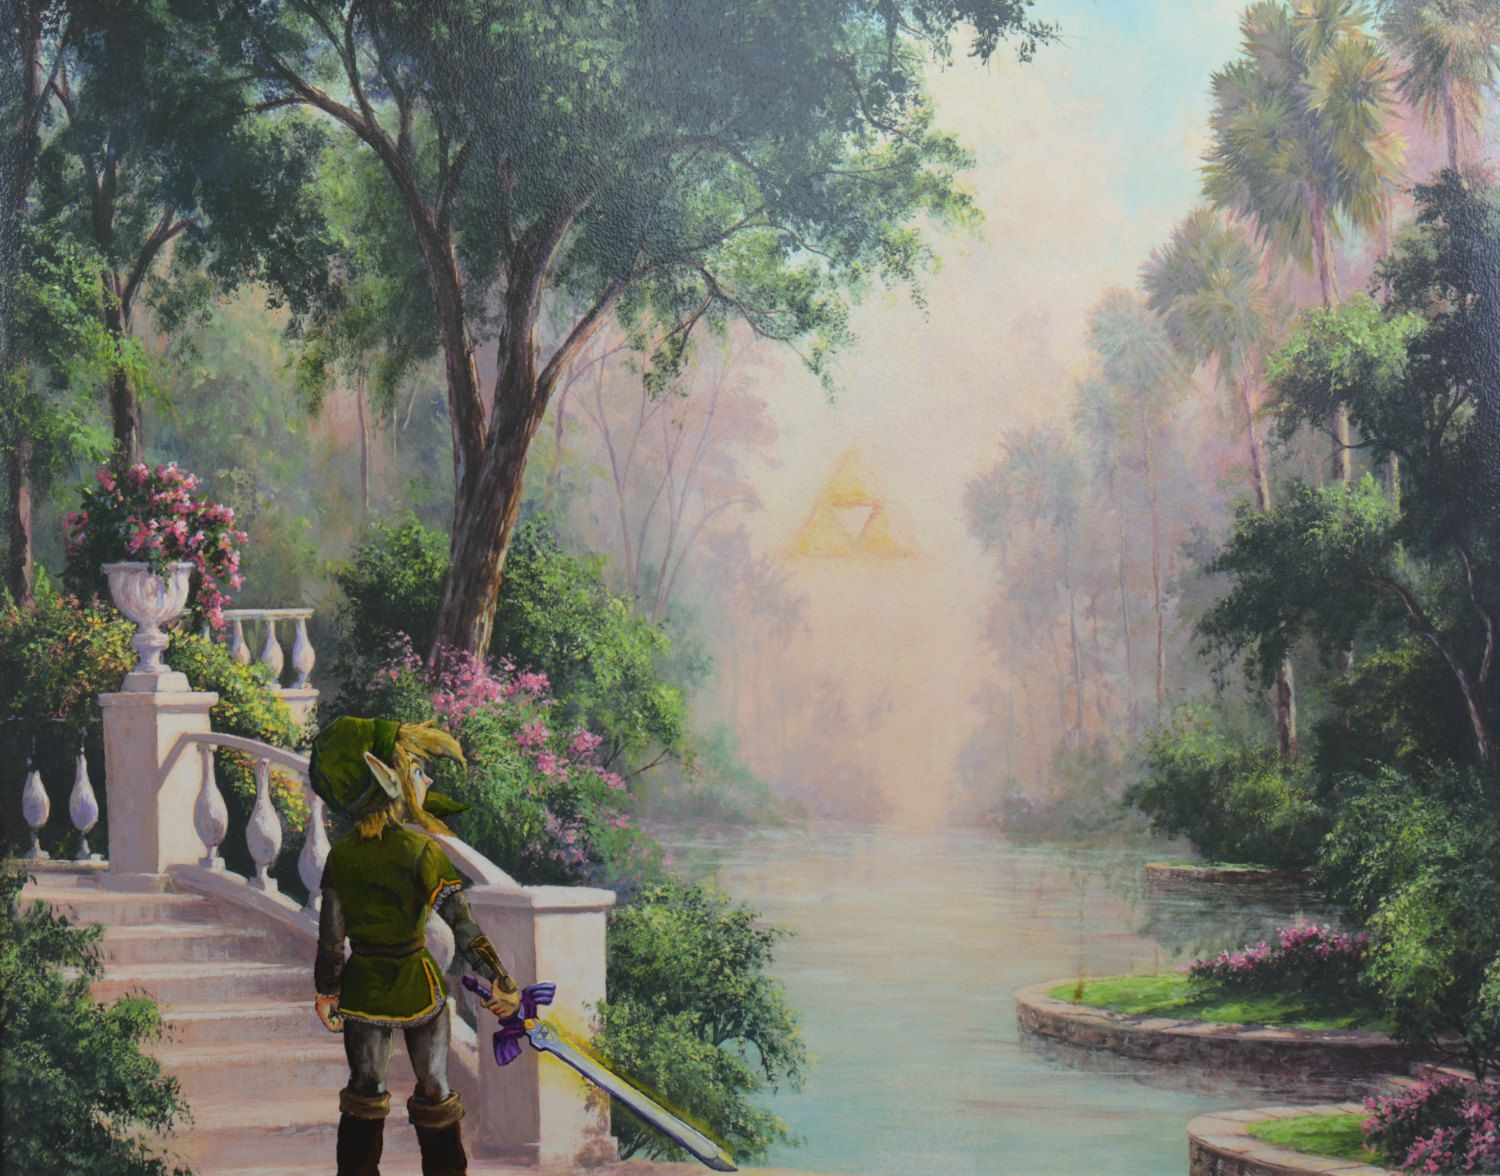 26 video game wall art parody prints that will blow your mind 26 video game wall art parody prints that will blow your mind amipublicfo Choice Image